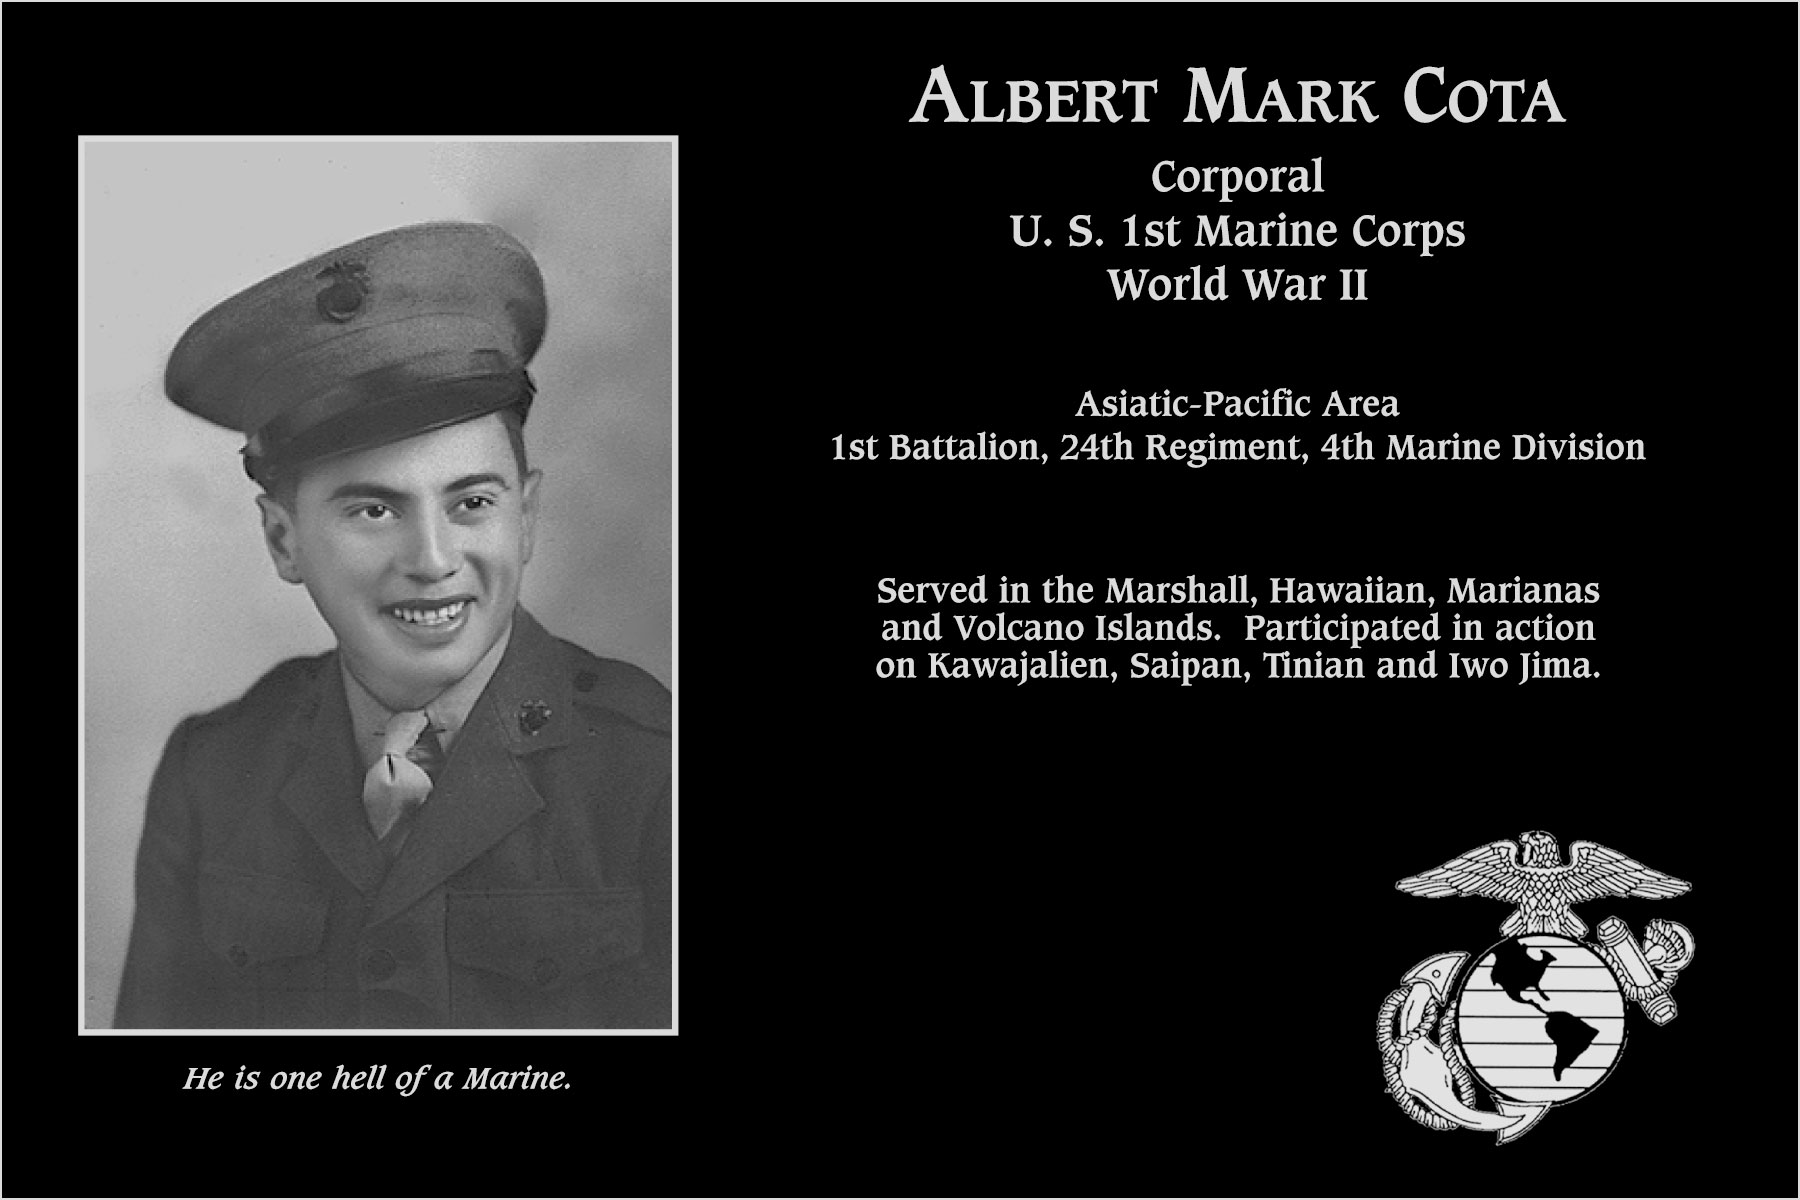 Albert Mark Cota